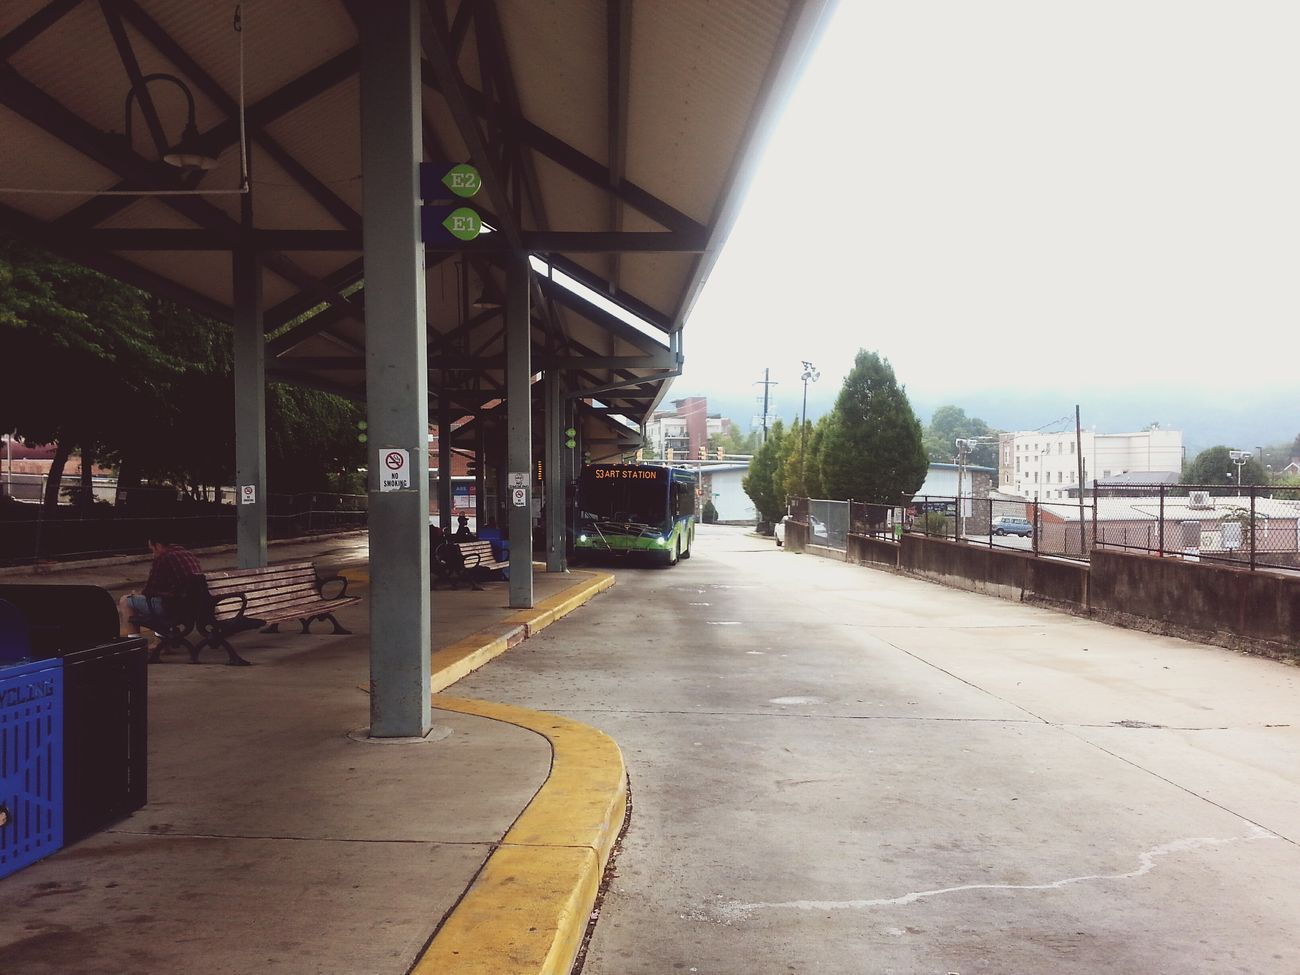 At the Asheville Transit Station starting my day Loving To Drive The Bus Accem Scott Asheville, NC First Eyeem Photo